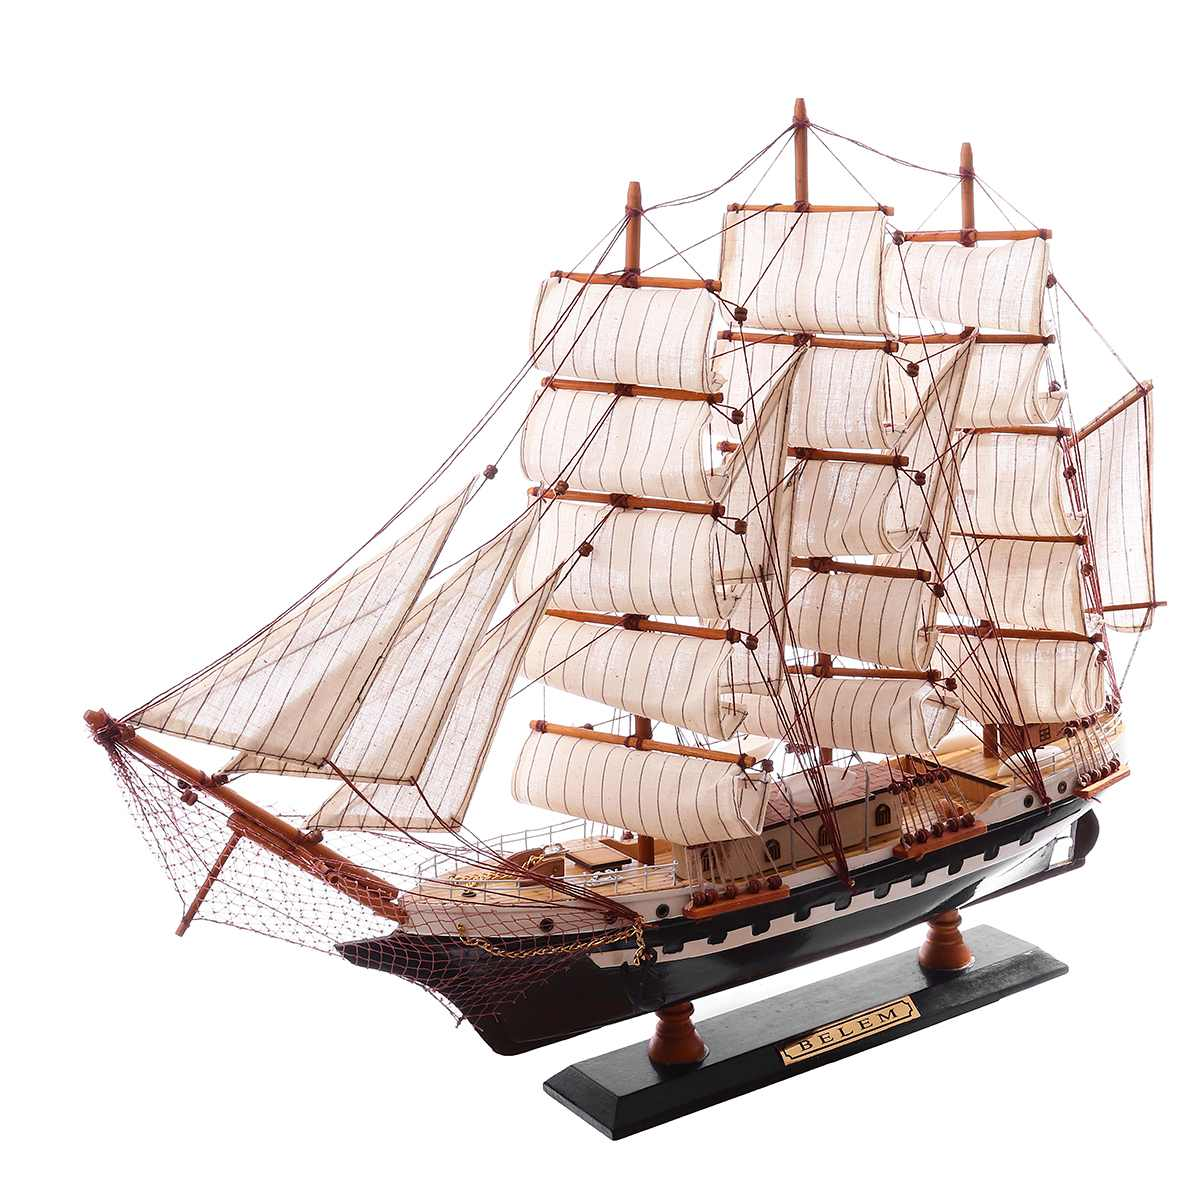 Wooden Sailboat Model Sailing Ship Display Scale Boat Decoration Gift Kits DIY Ship Assembly Model Kits Classical Handmade Boats